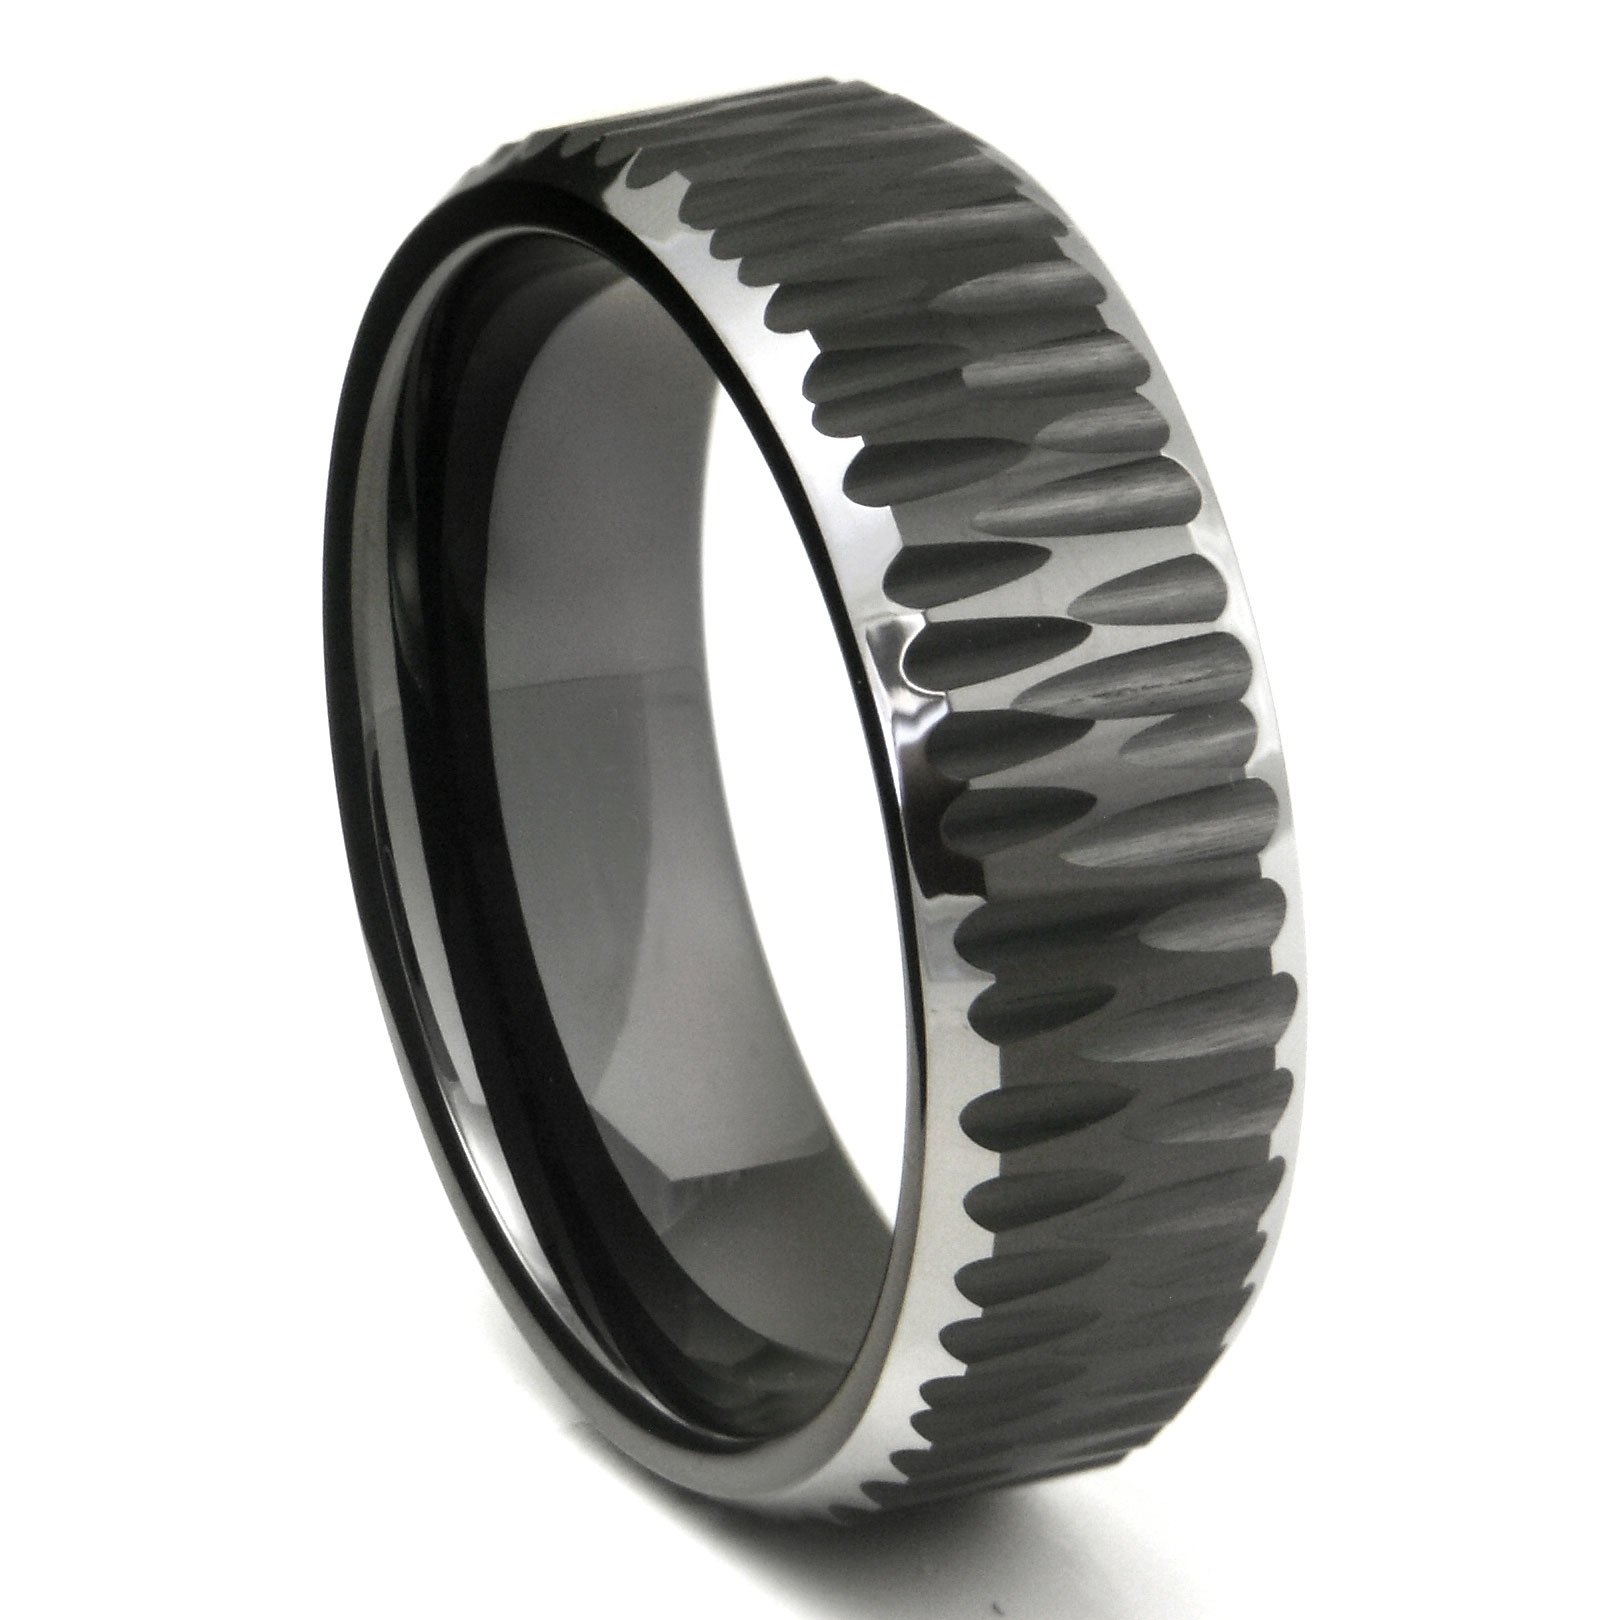 Black Tungsten Carbide Hammer Finish Beveled Wedding Band Ring With Regard To Most Popular Tungsten Wedding Bands (Gallery 2 of 15)